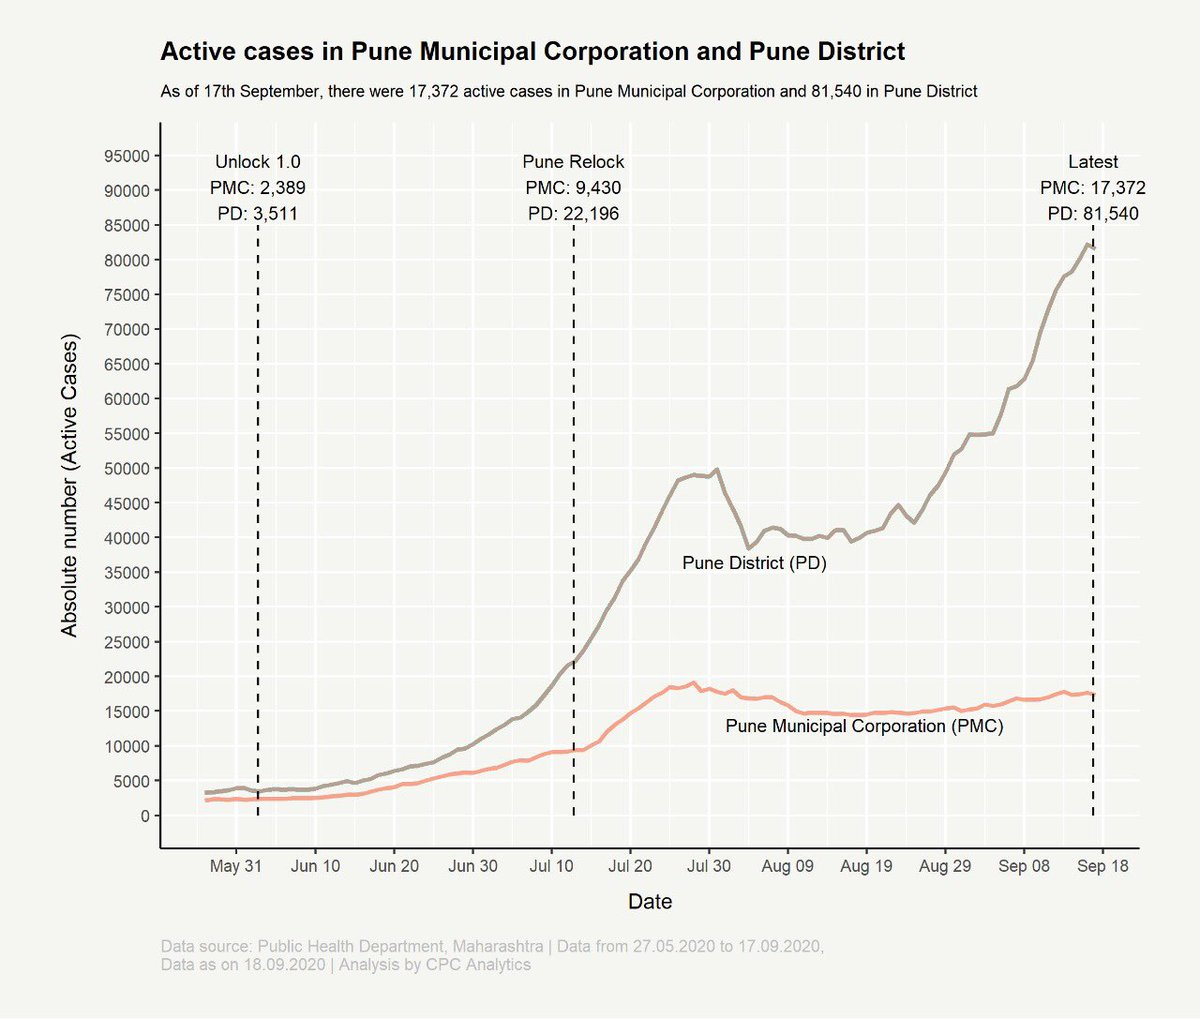 Comparing the active #COVID19 cases in #Pune city and #Pune district   It's pretty apparent where the real increase has been. The health infra is shared, so it would continue to be stressed   @aparanjape @c_aashish @SidShirole @IAS_Rubal @sudhirmehtapune @MulaMutha https://t.co/34p3PZ0DeT